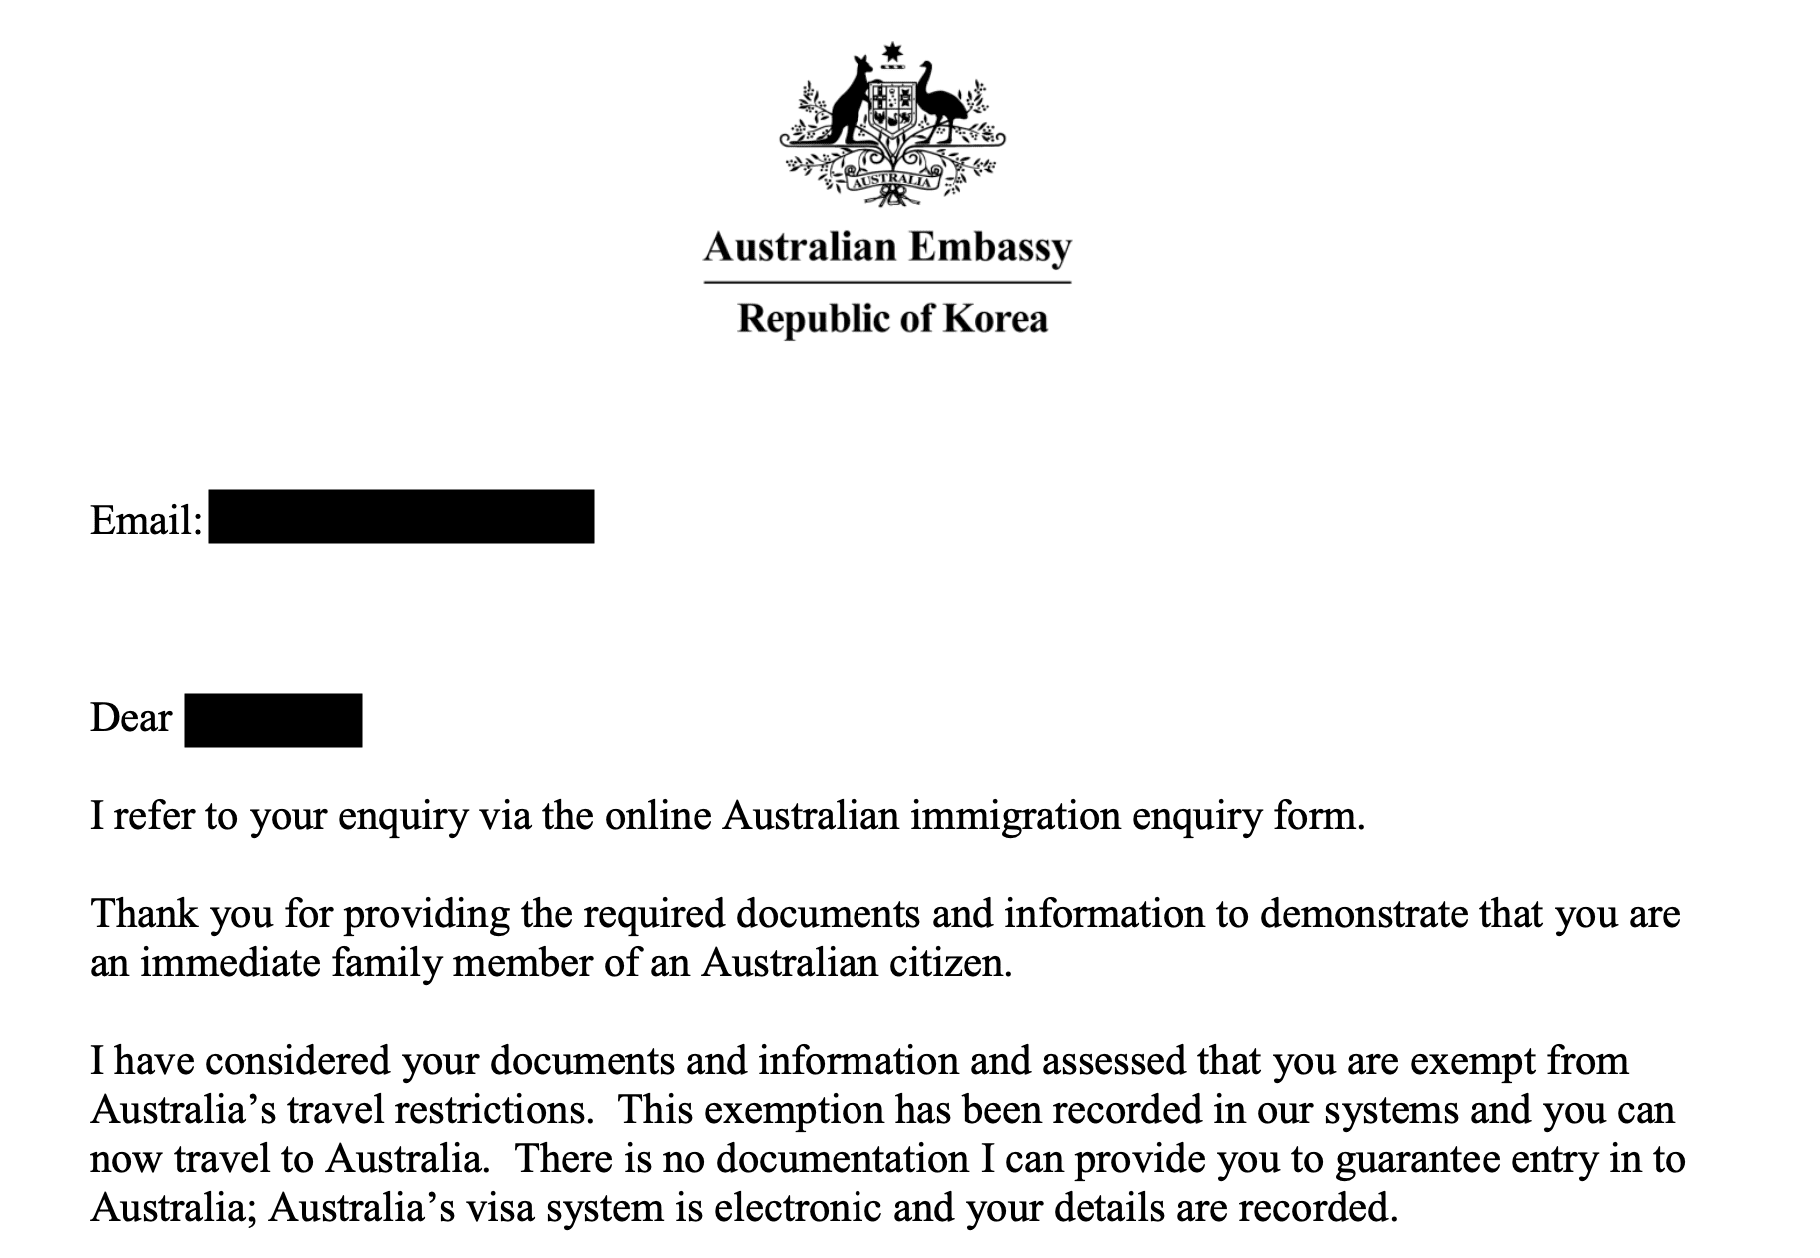 Letter from Australian Embassy granting exemption from the Coronavirus travel ban